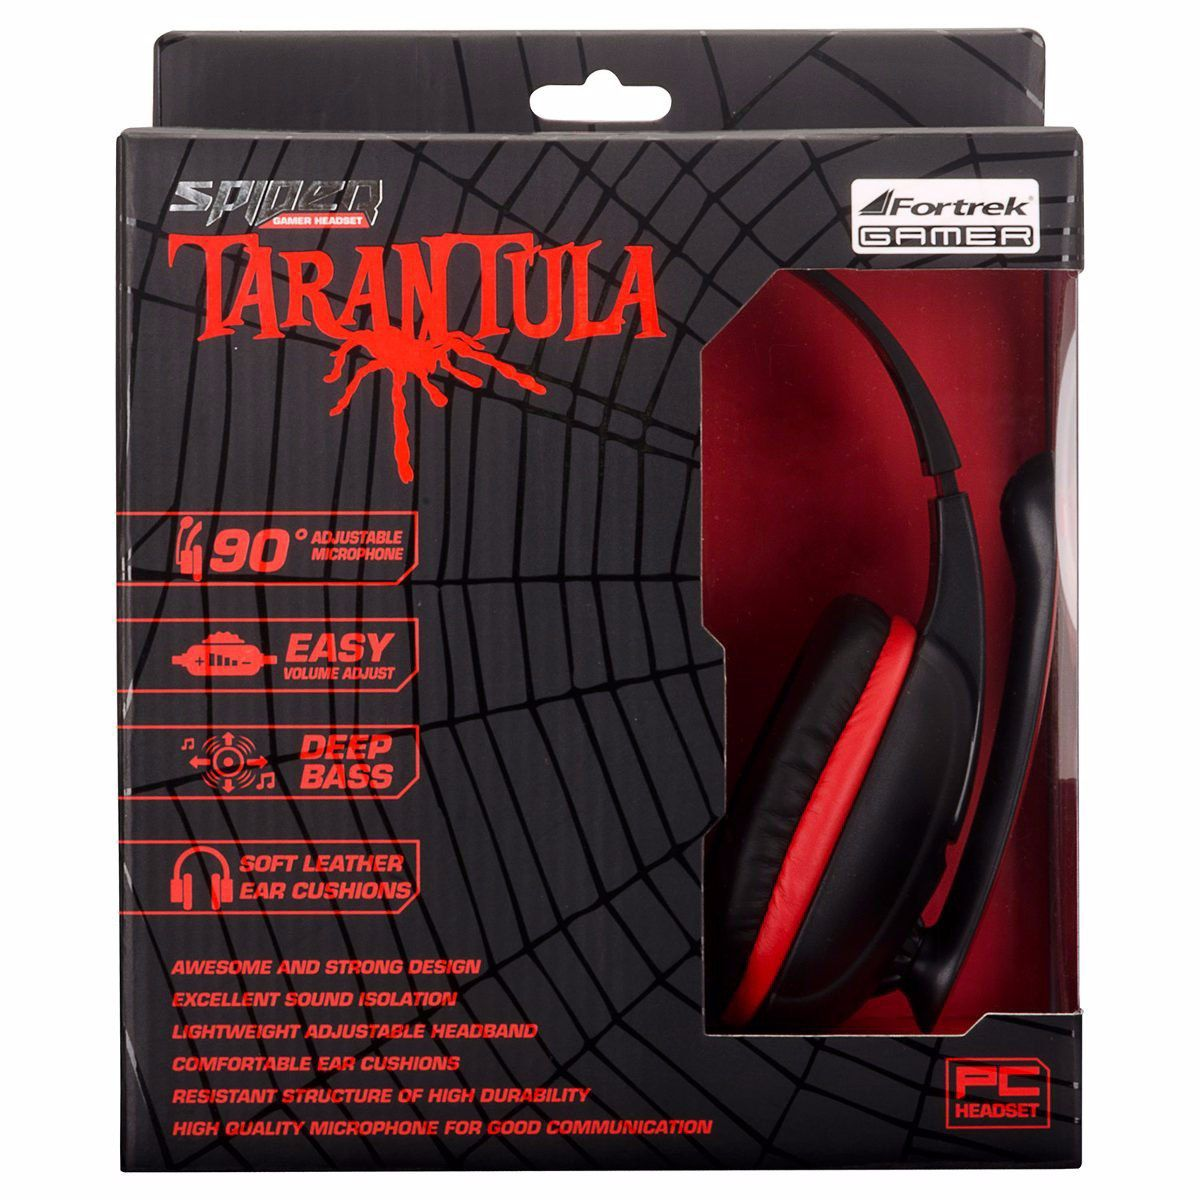 Kit Gamer Spider Tarantula  Mouse OM702 PT e Headset SHS702 Fortrek